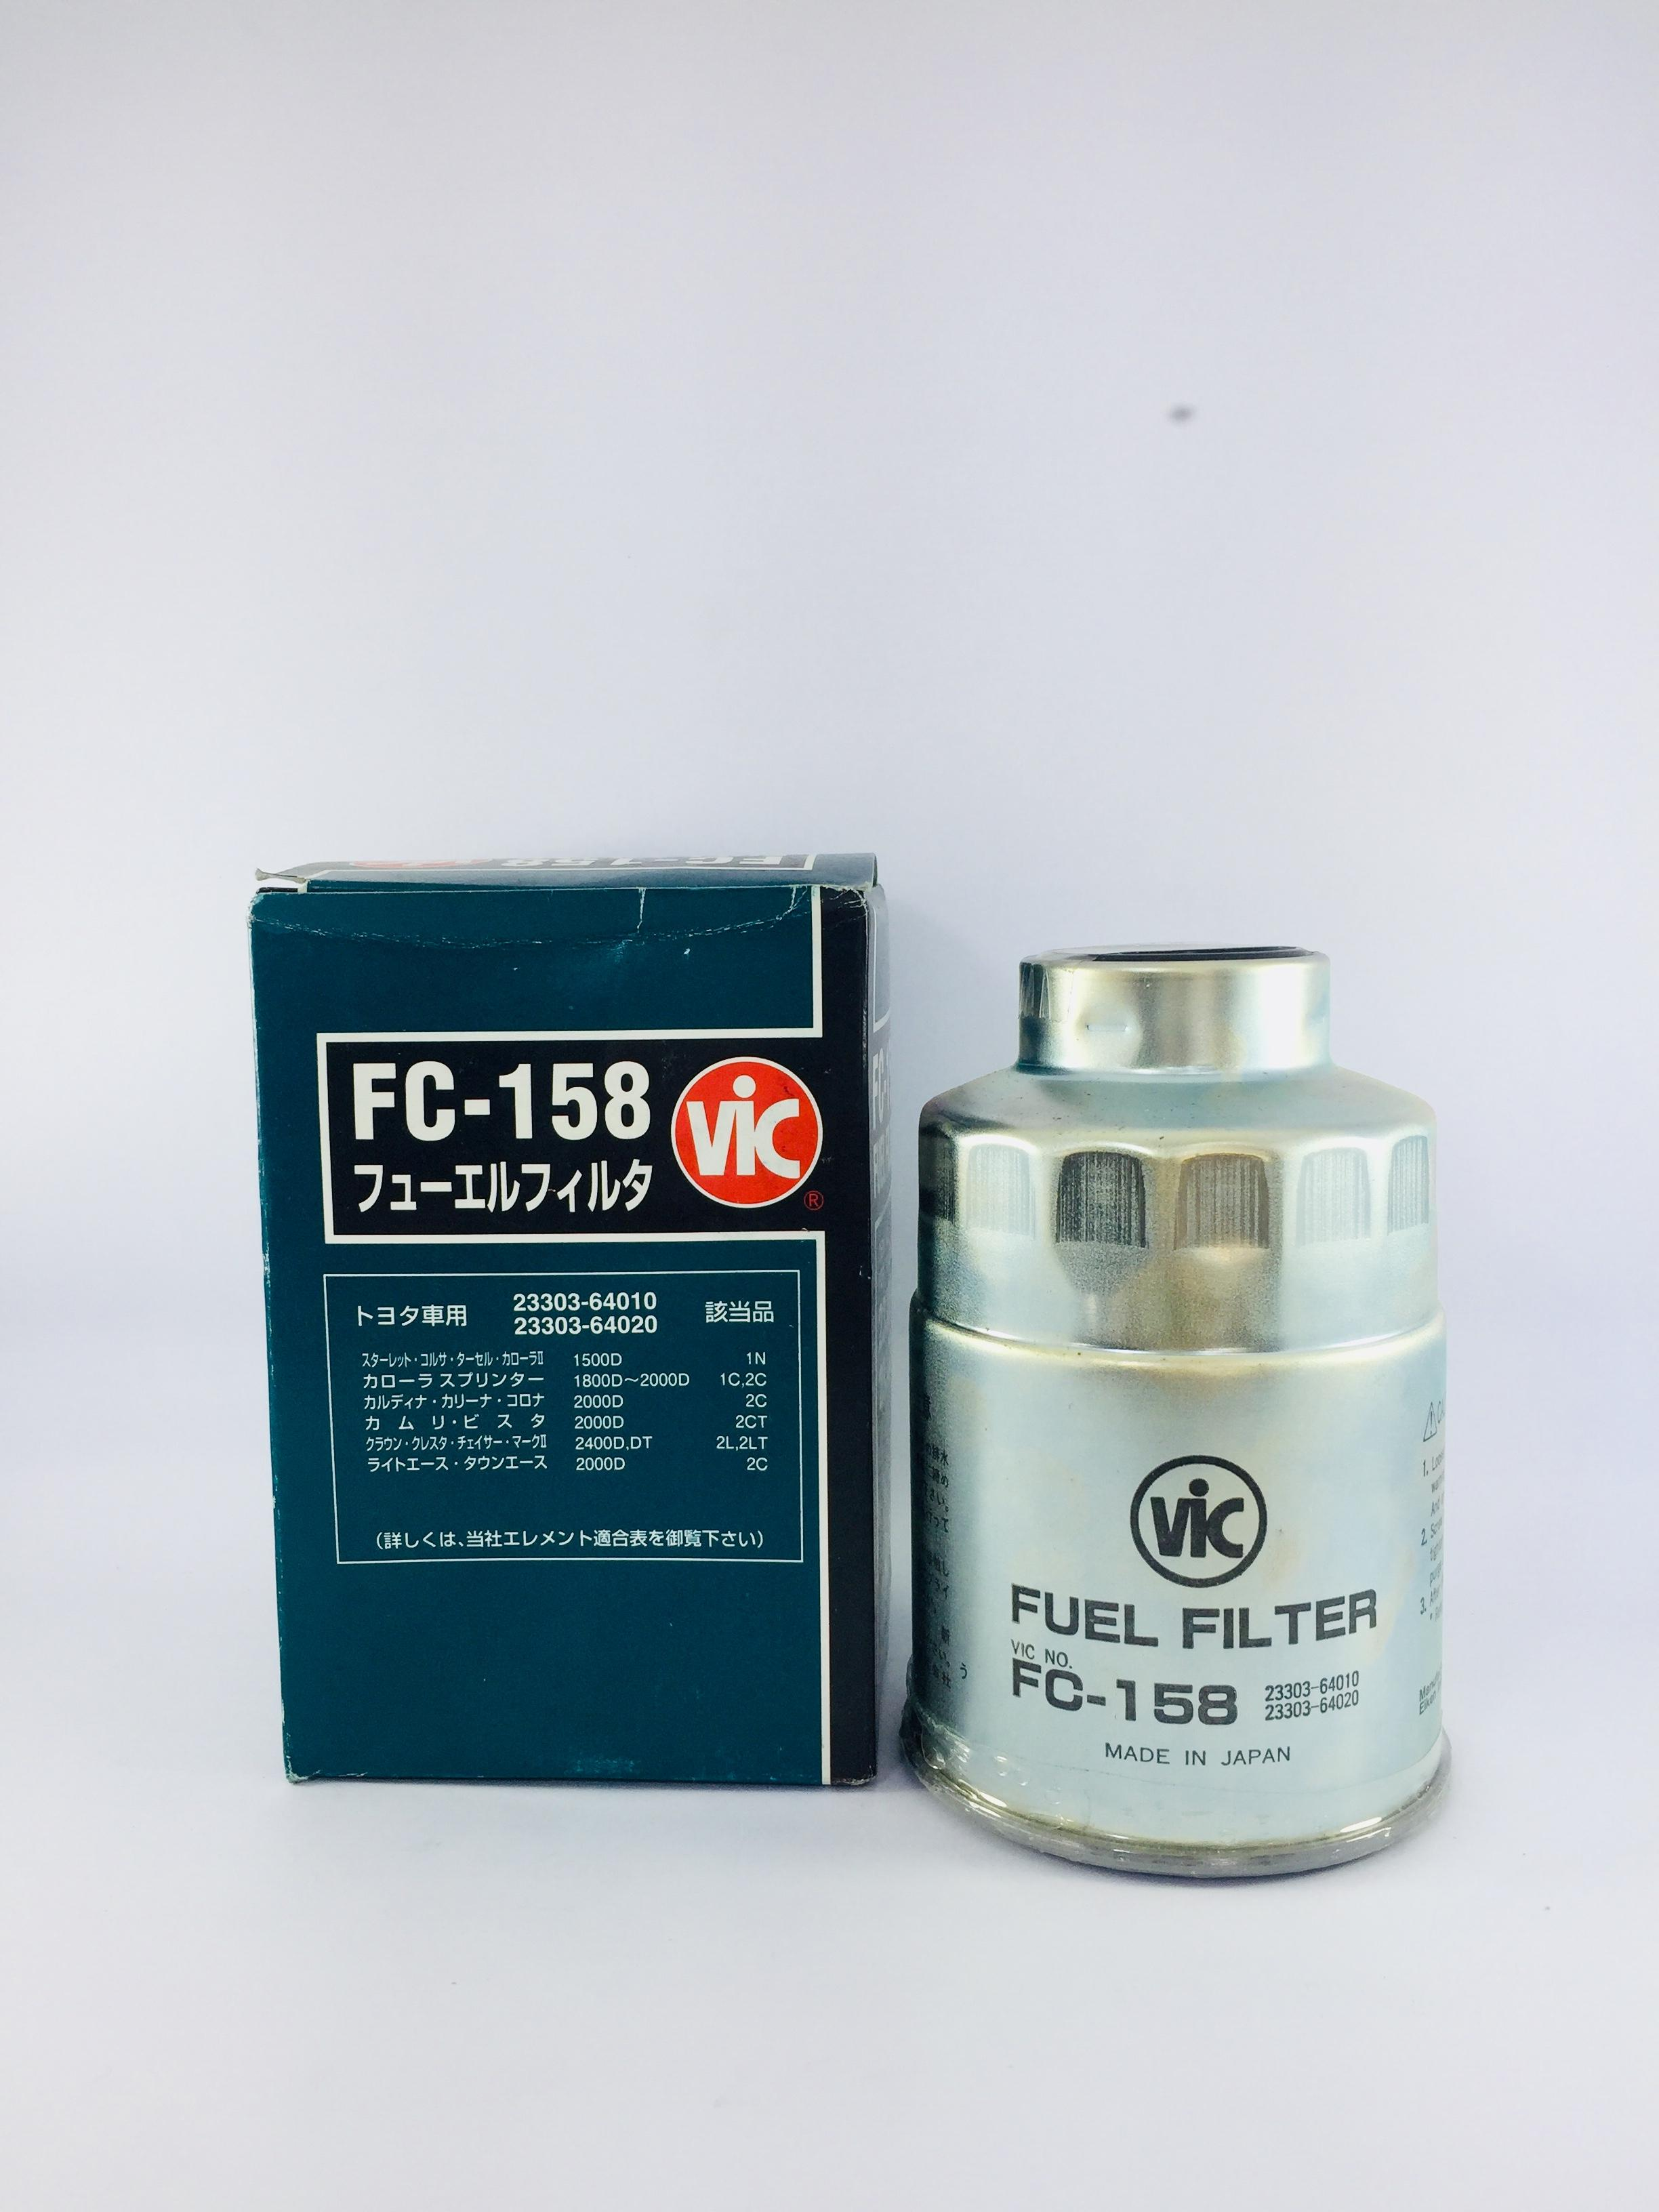 vic fuel filter fc-158 for toyota 1c,2c,2l engine